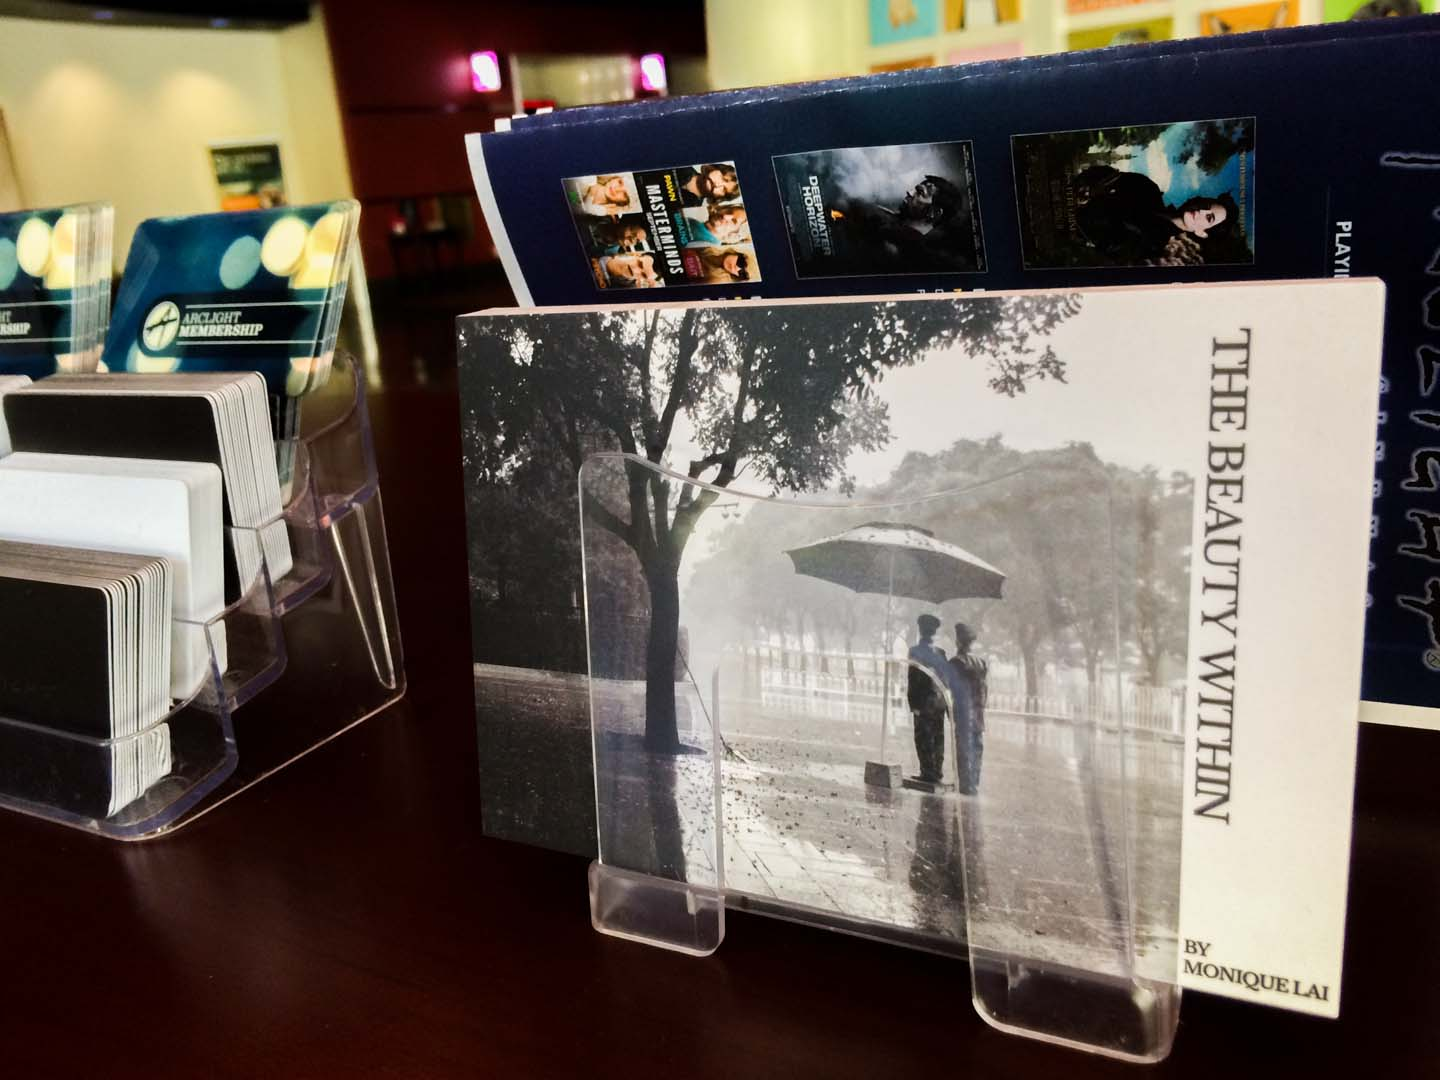 Postcards from 'The Beauty Within' photo exhibition are placed on a table alongside ArcLight membership brochures.